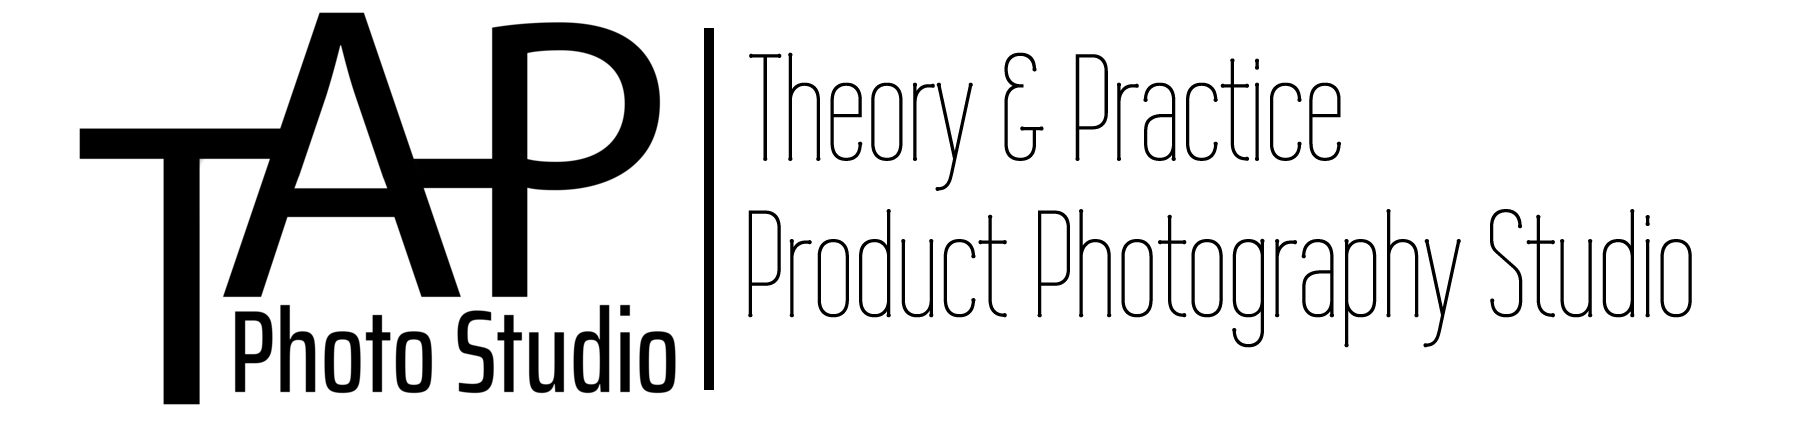 tap logo wide2.png